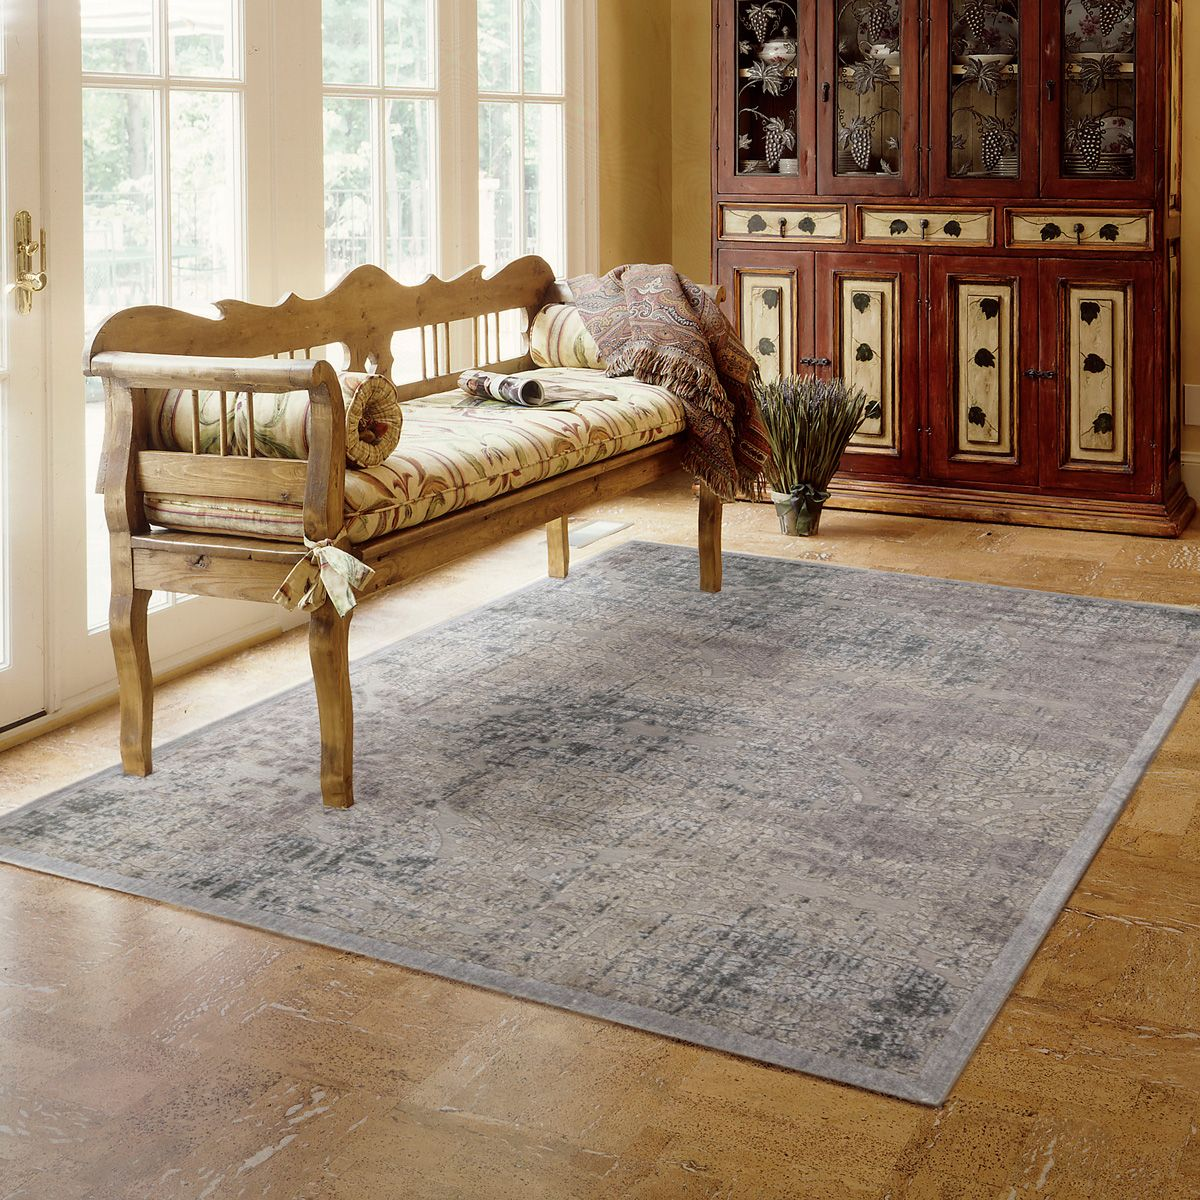 Vintage Effect Rug: Large Vintage Effect Rug In Grey 129.99